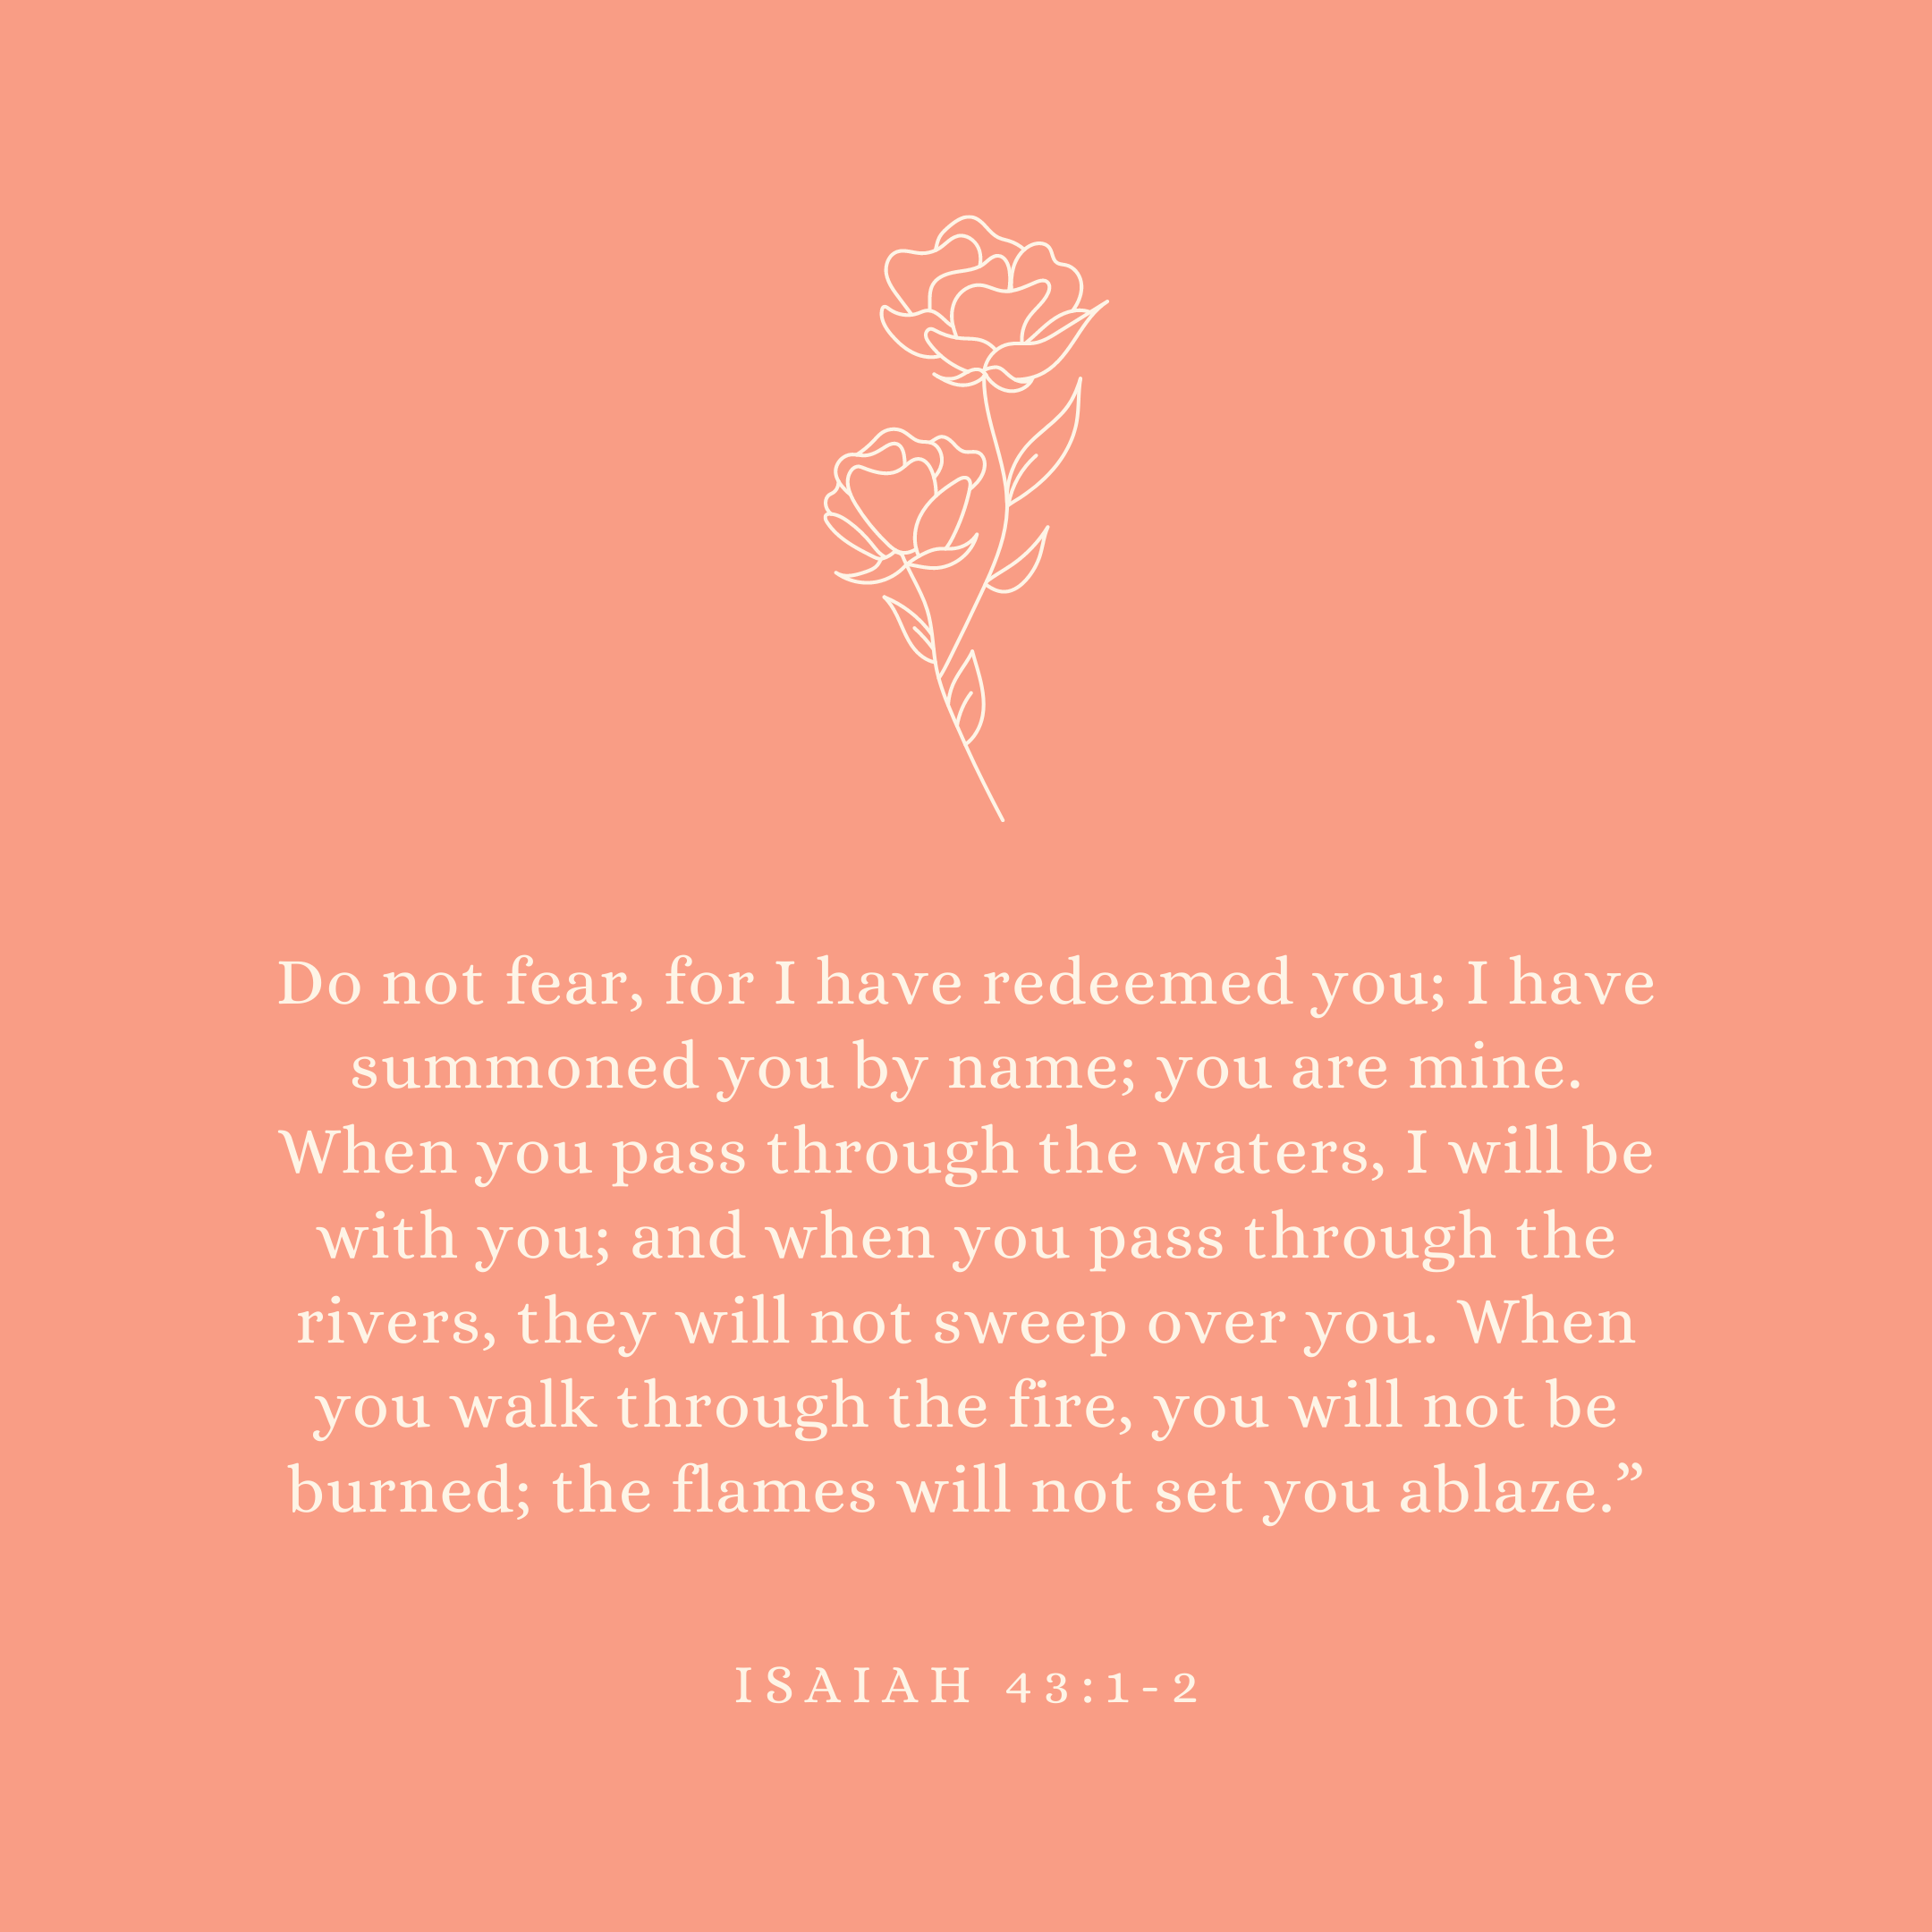 Isaiah 43:1-2 Do not fear, for I have redeemed you; I have summoned you by name; you are mine. When you pass through the waters, I will be with you; and when you pass through the rivers, they will not sweep over you. When you walk through the fire, you will not be burned; the flames will not set you ablaze.""